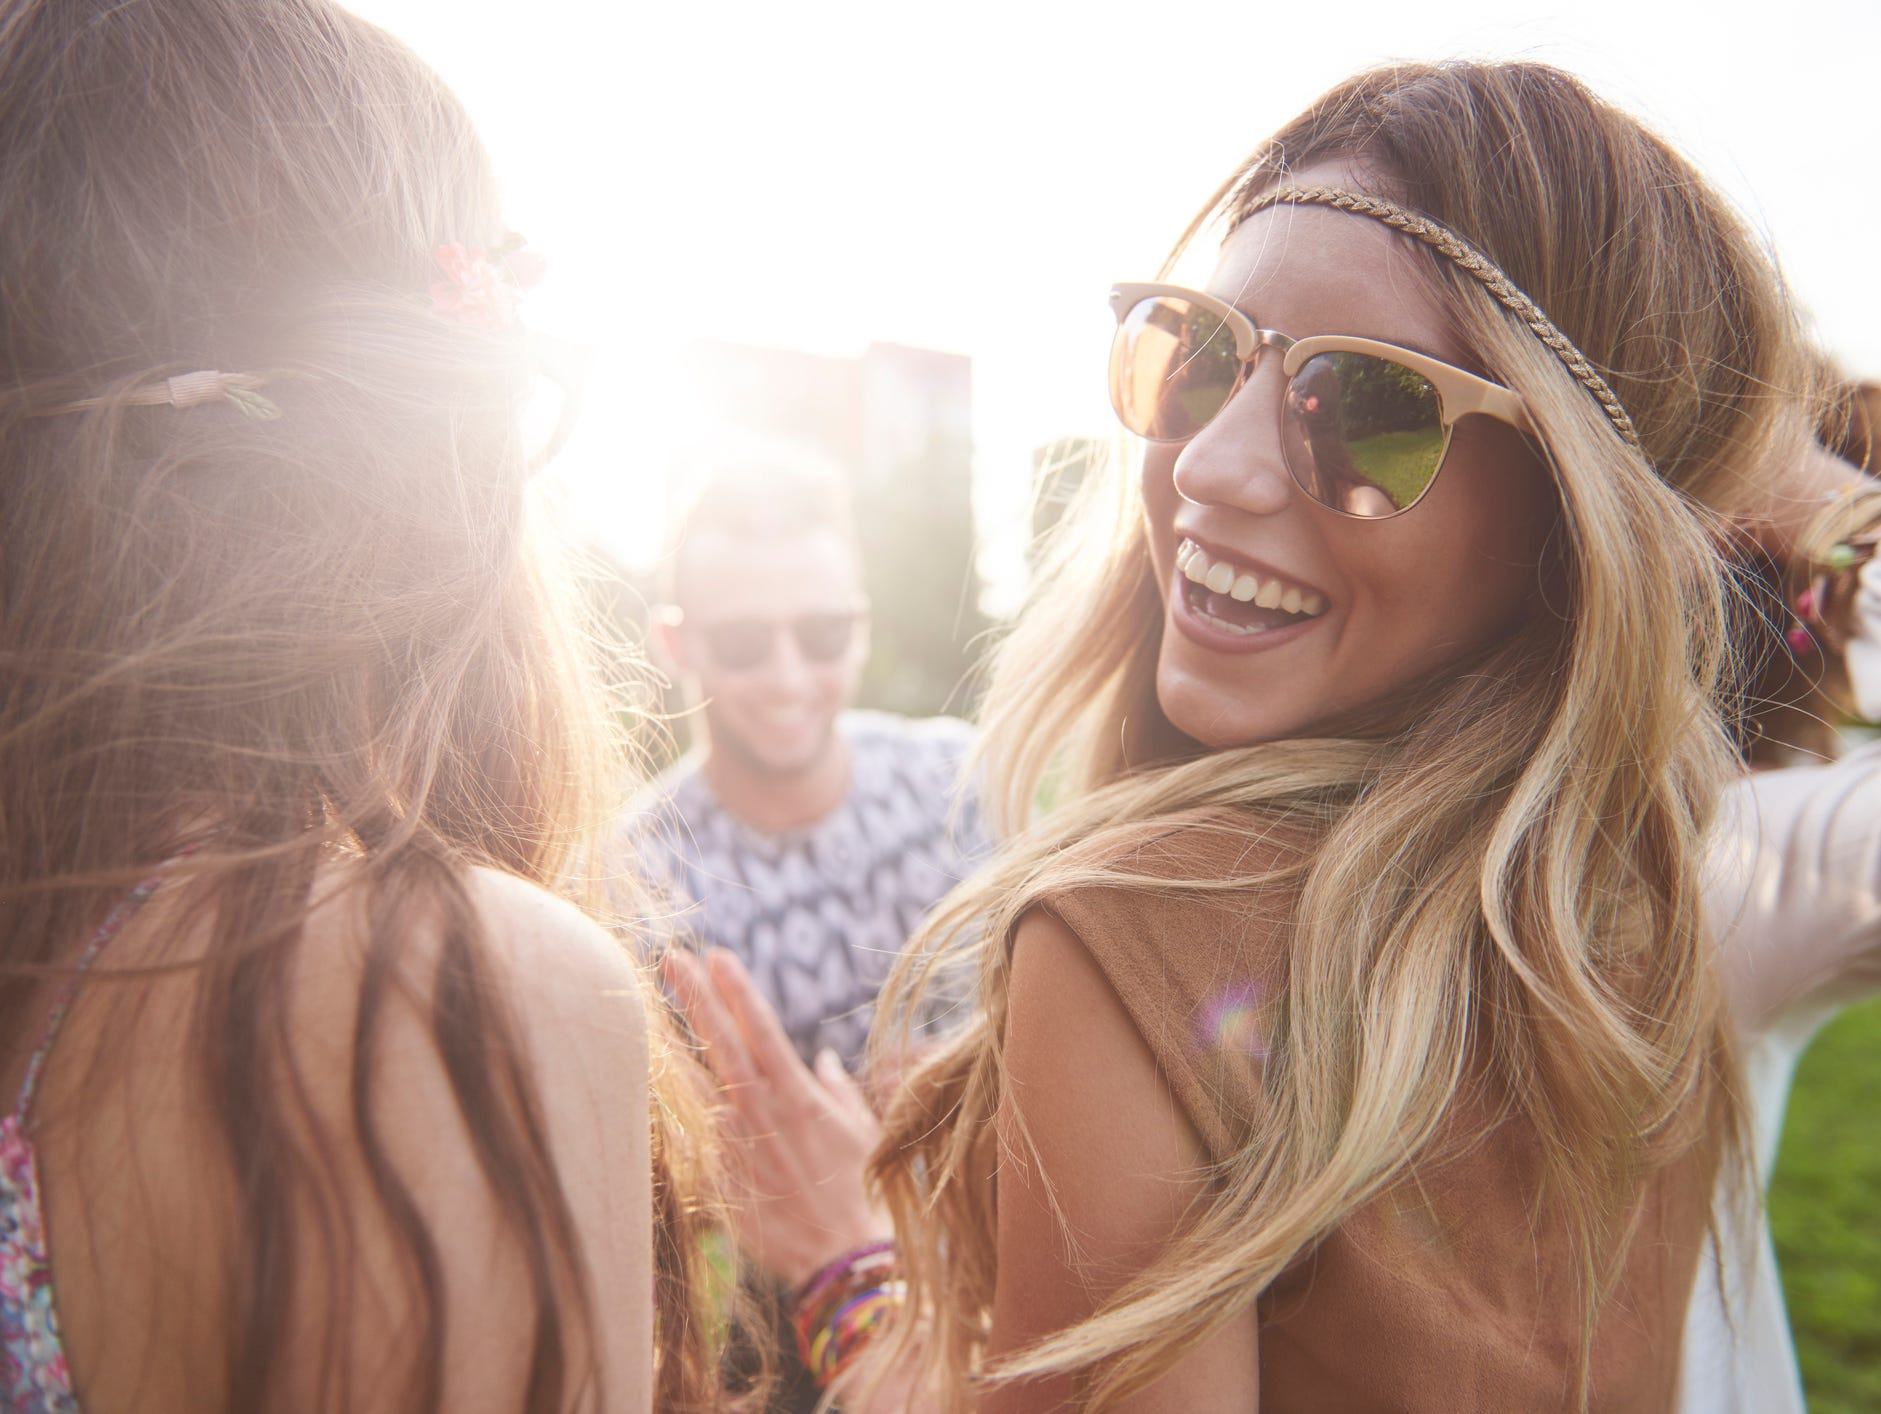 Music fans, make the most of your summer with a $500 Ticketmaster gift card. Enter 5/7-5/31